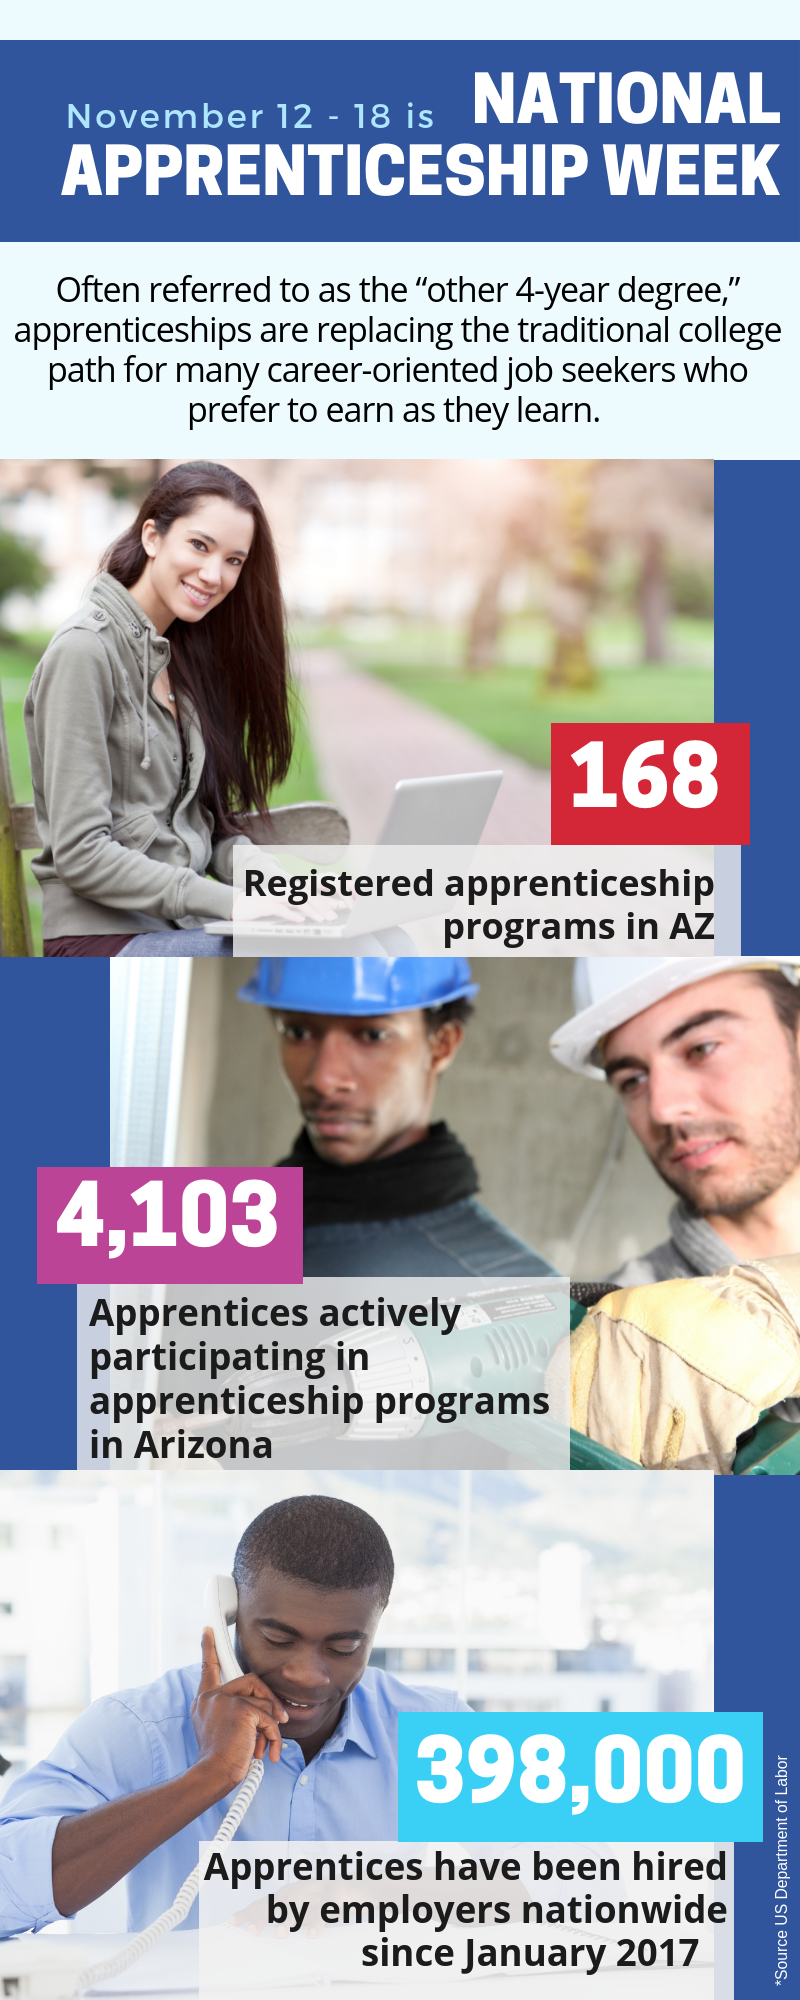 Facts and figures about National Apprenticeship Week.